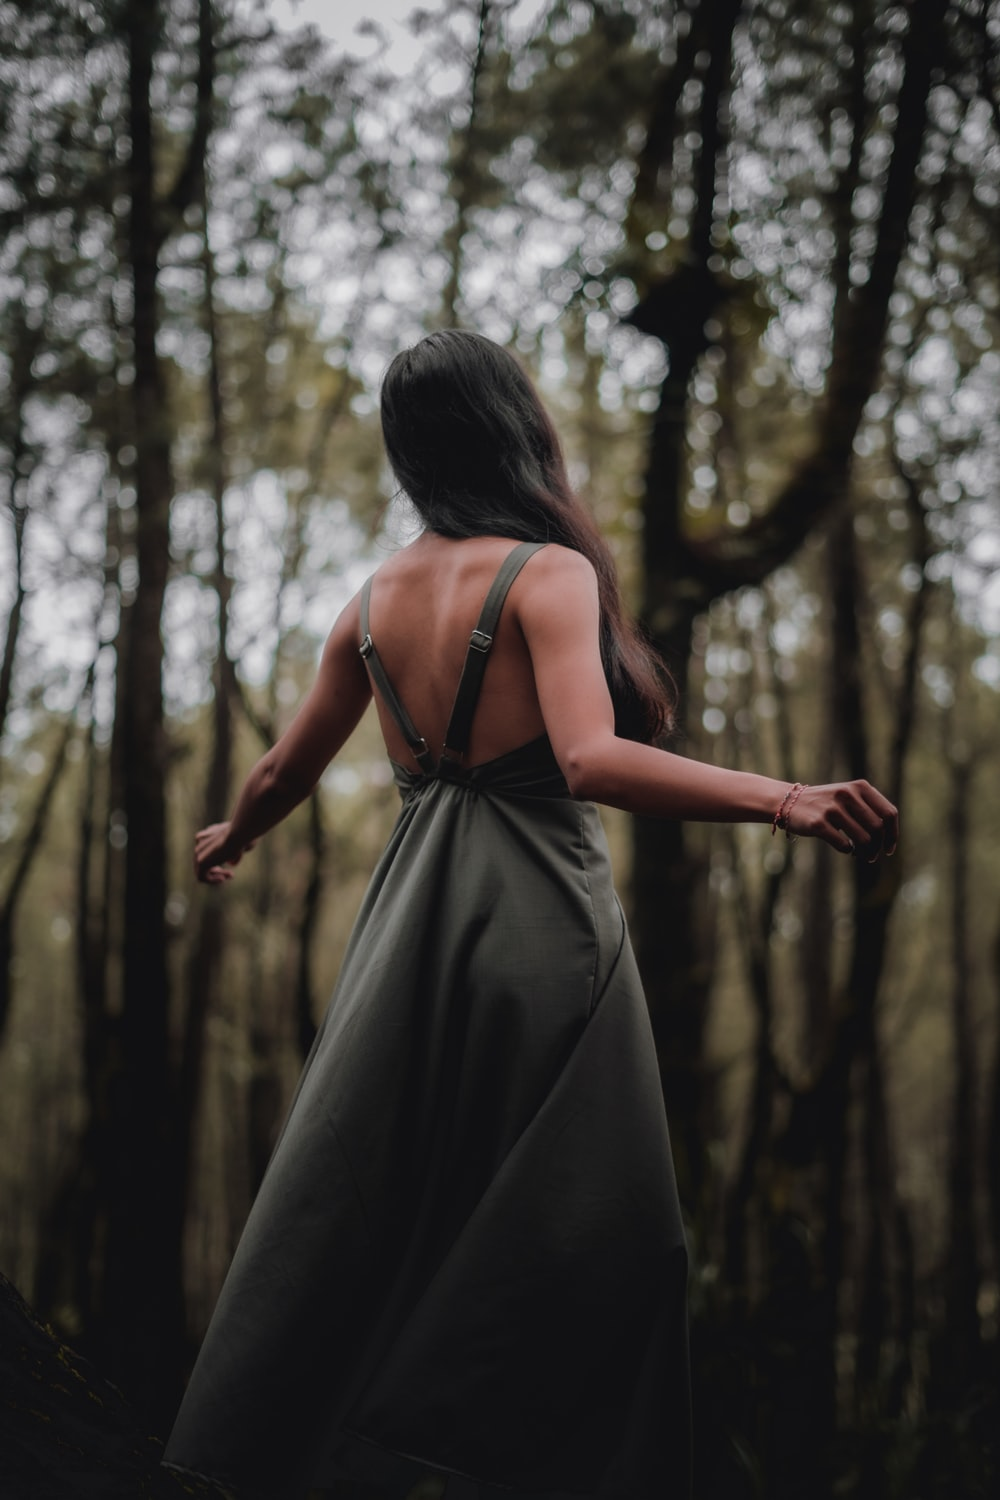 woman in black spaghetti strap dress standing in forest during daytime